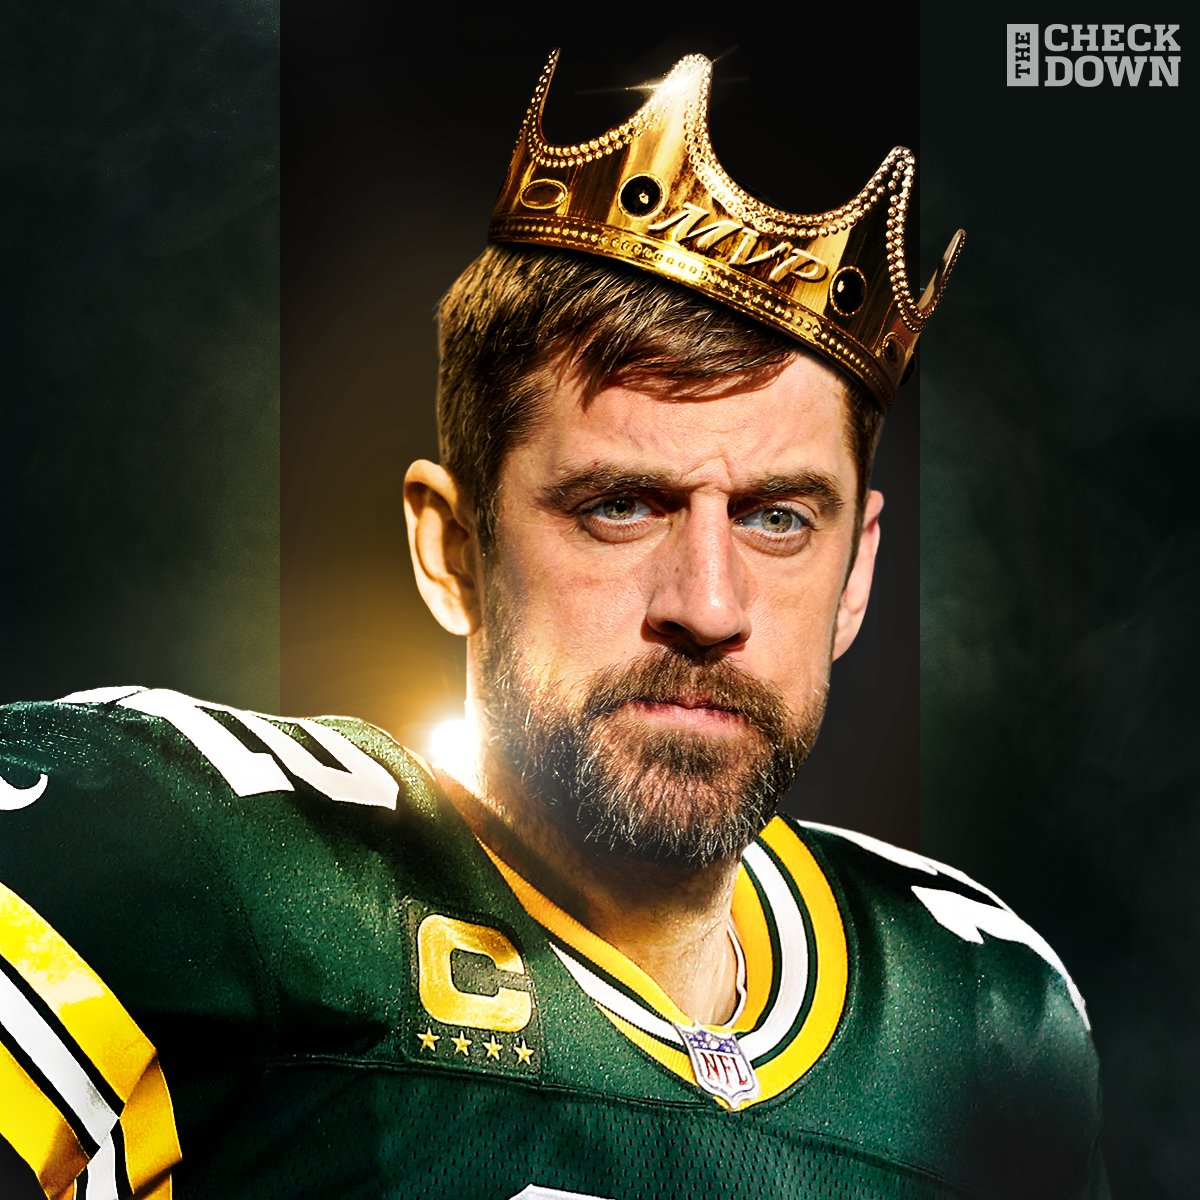 Replying to @thecheckdown: The MVP has been crowned 👑🏆 @AaronRodgers12 @packers